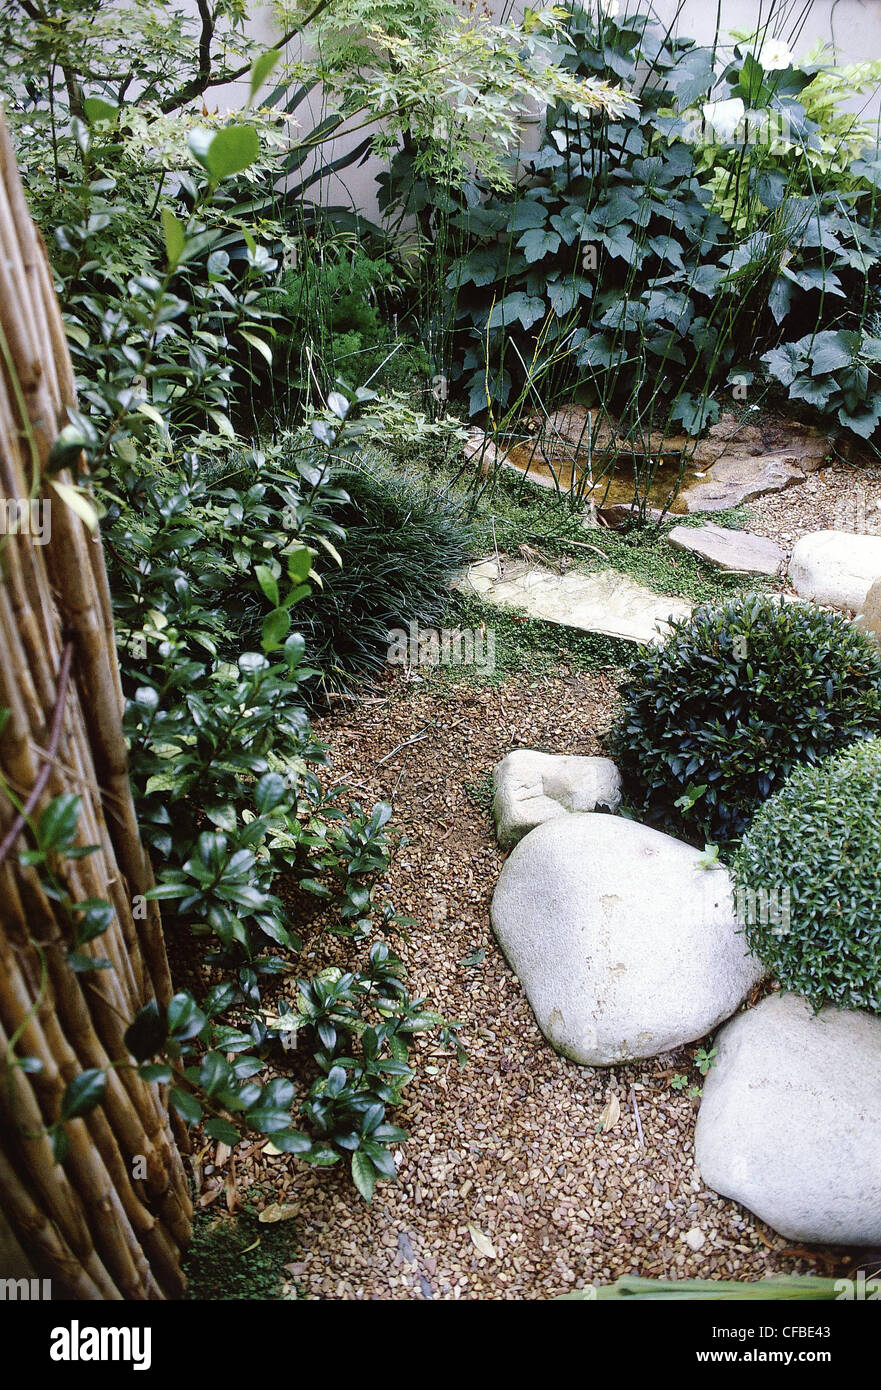 Small Gardens Garden Gravel Path, Two Round Shaped Bushes ...